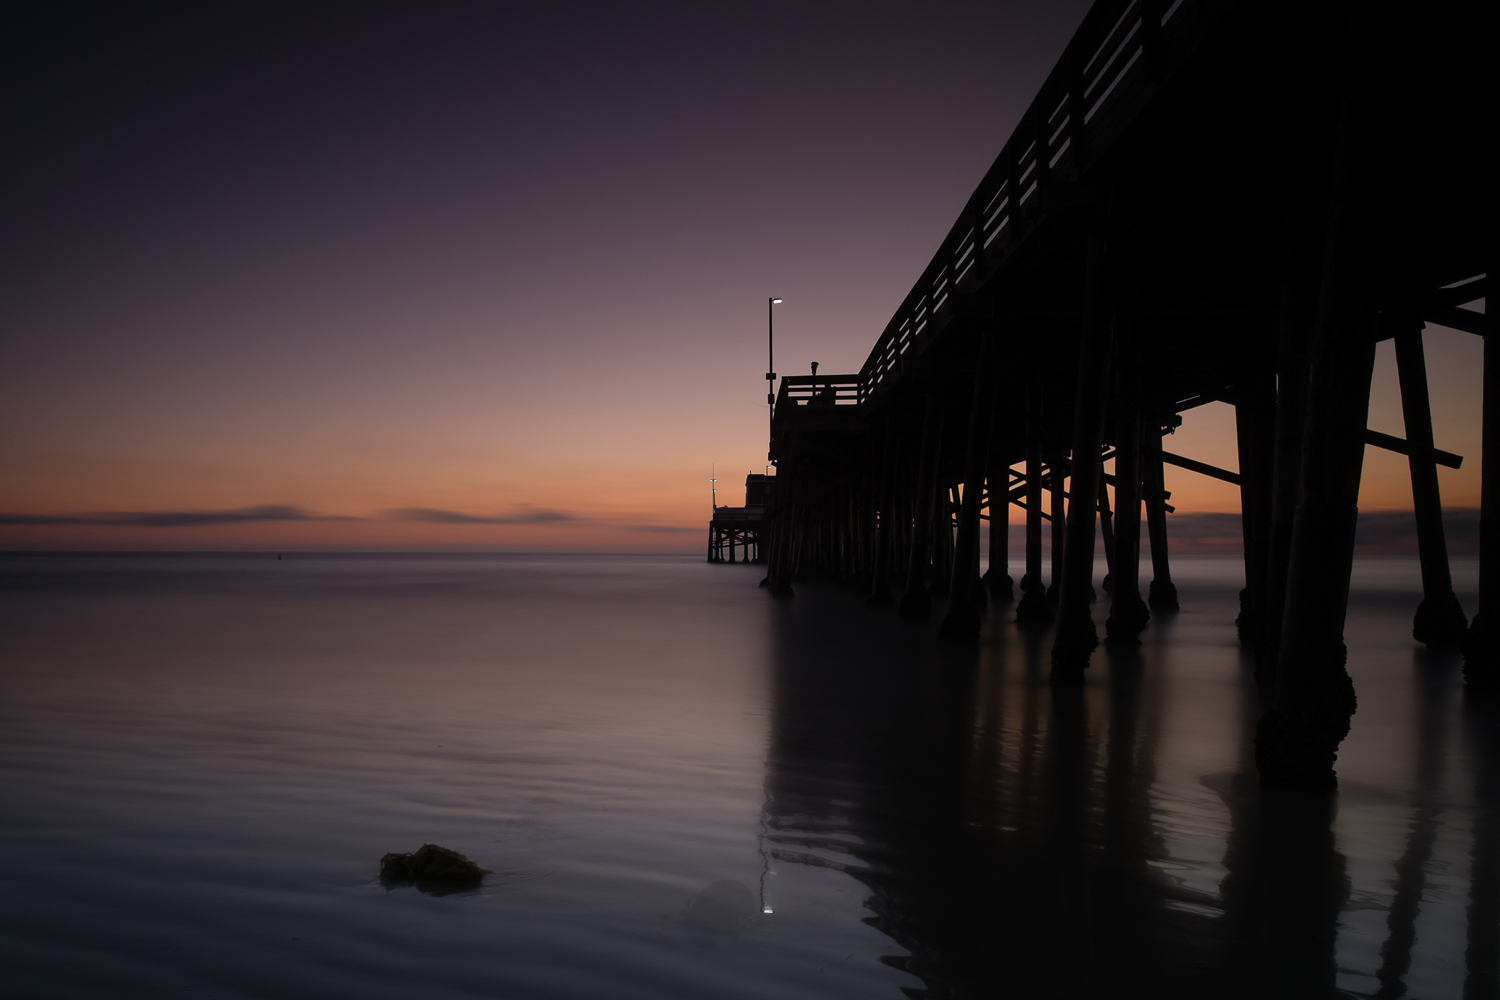 X-Pro1 with XF 14mm - 180 seconds at f/8 (3 stop grad ND filter and 10 stop ND filter)